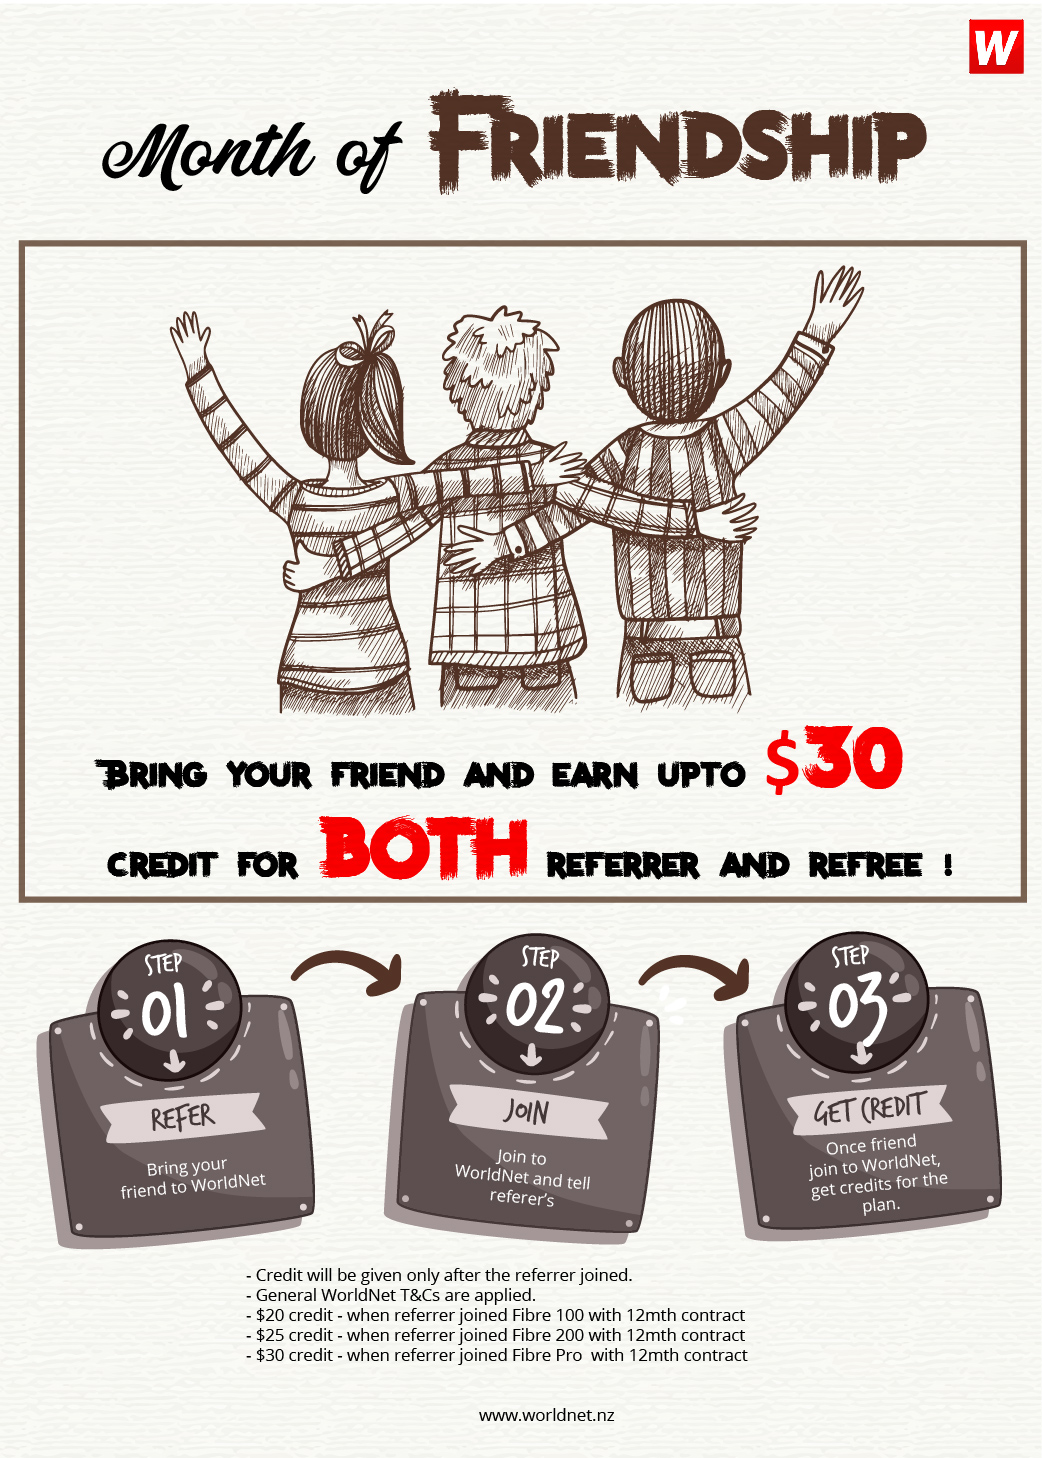 Bring Your Friend and Get max $30 CREDIT!!